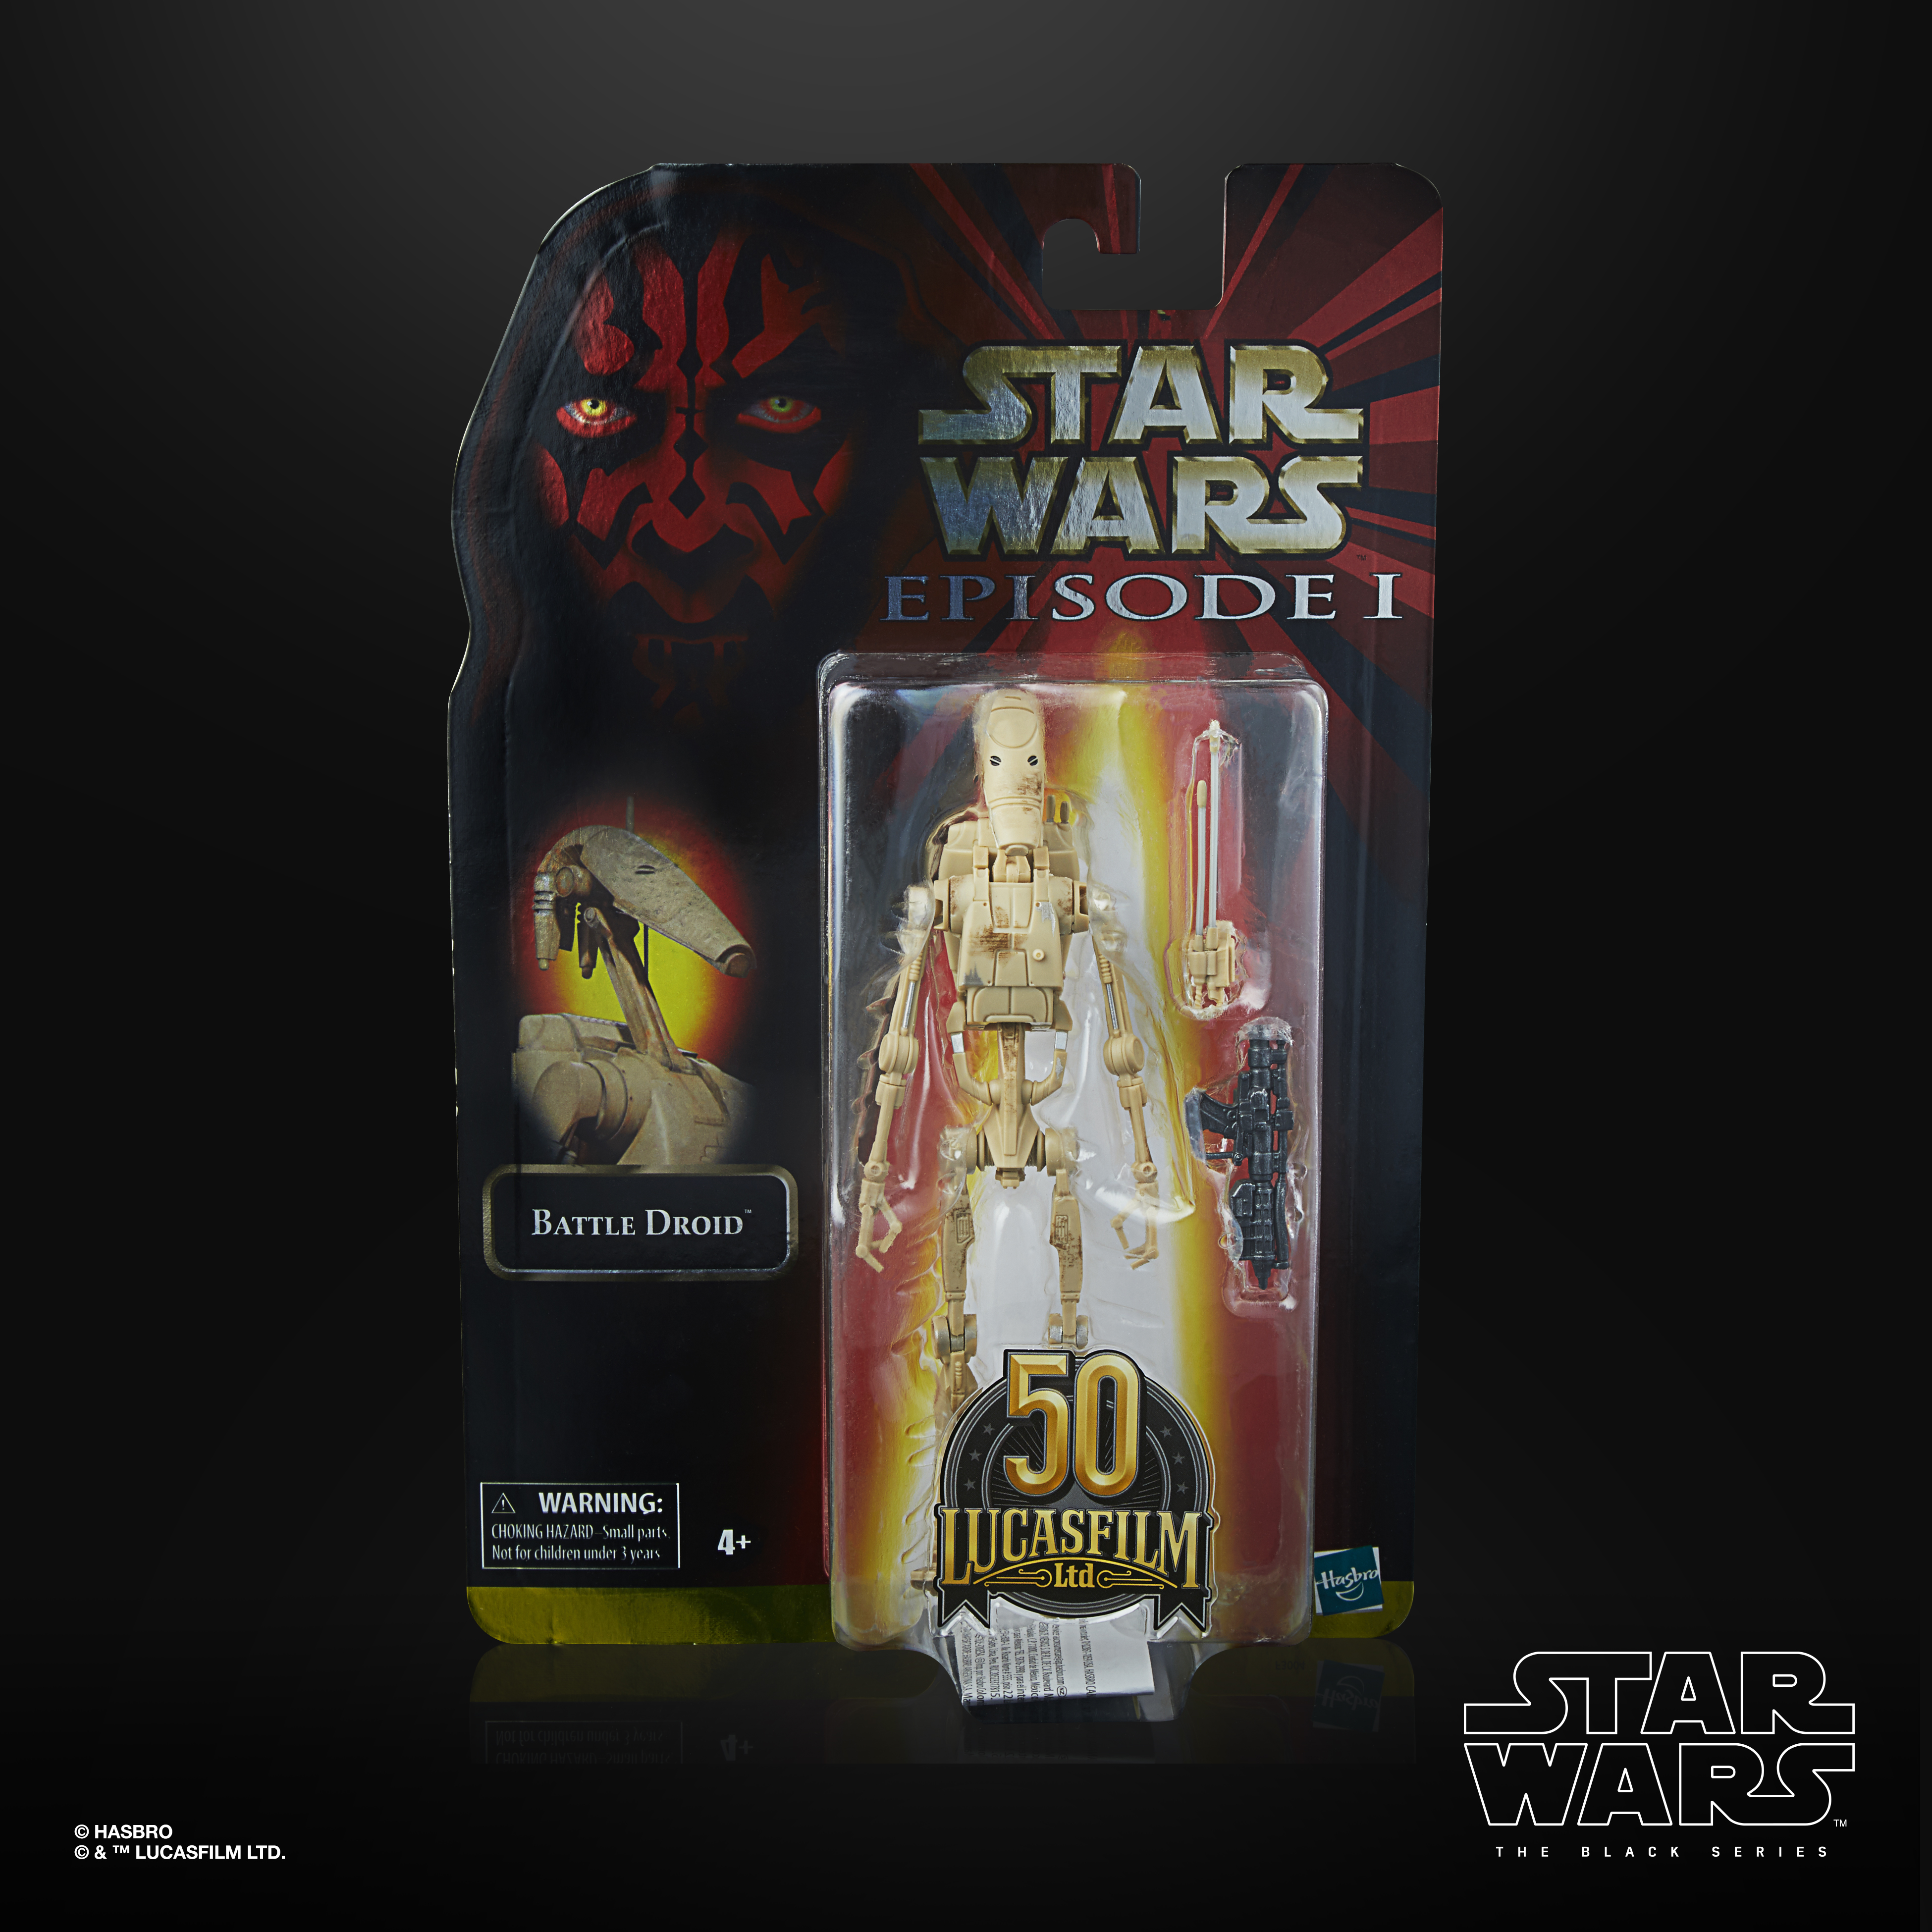 STAR WARS THE BLACK SERIES LUCASFILM 50TH ANNIVERSARY 6-INCH BATTLE DROID Figure – in pck(1)